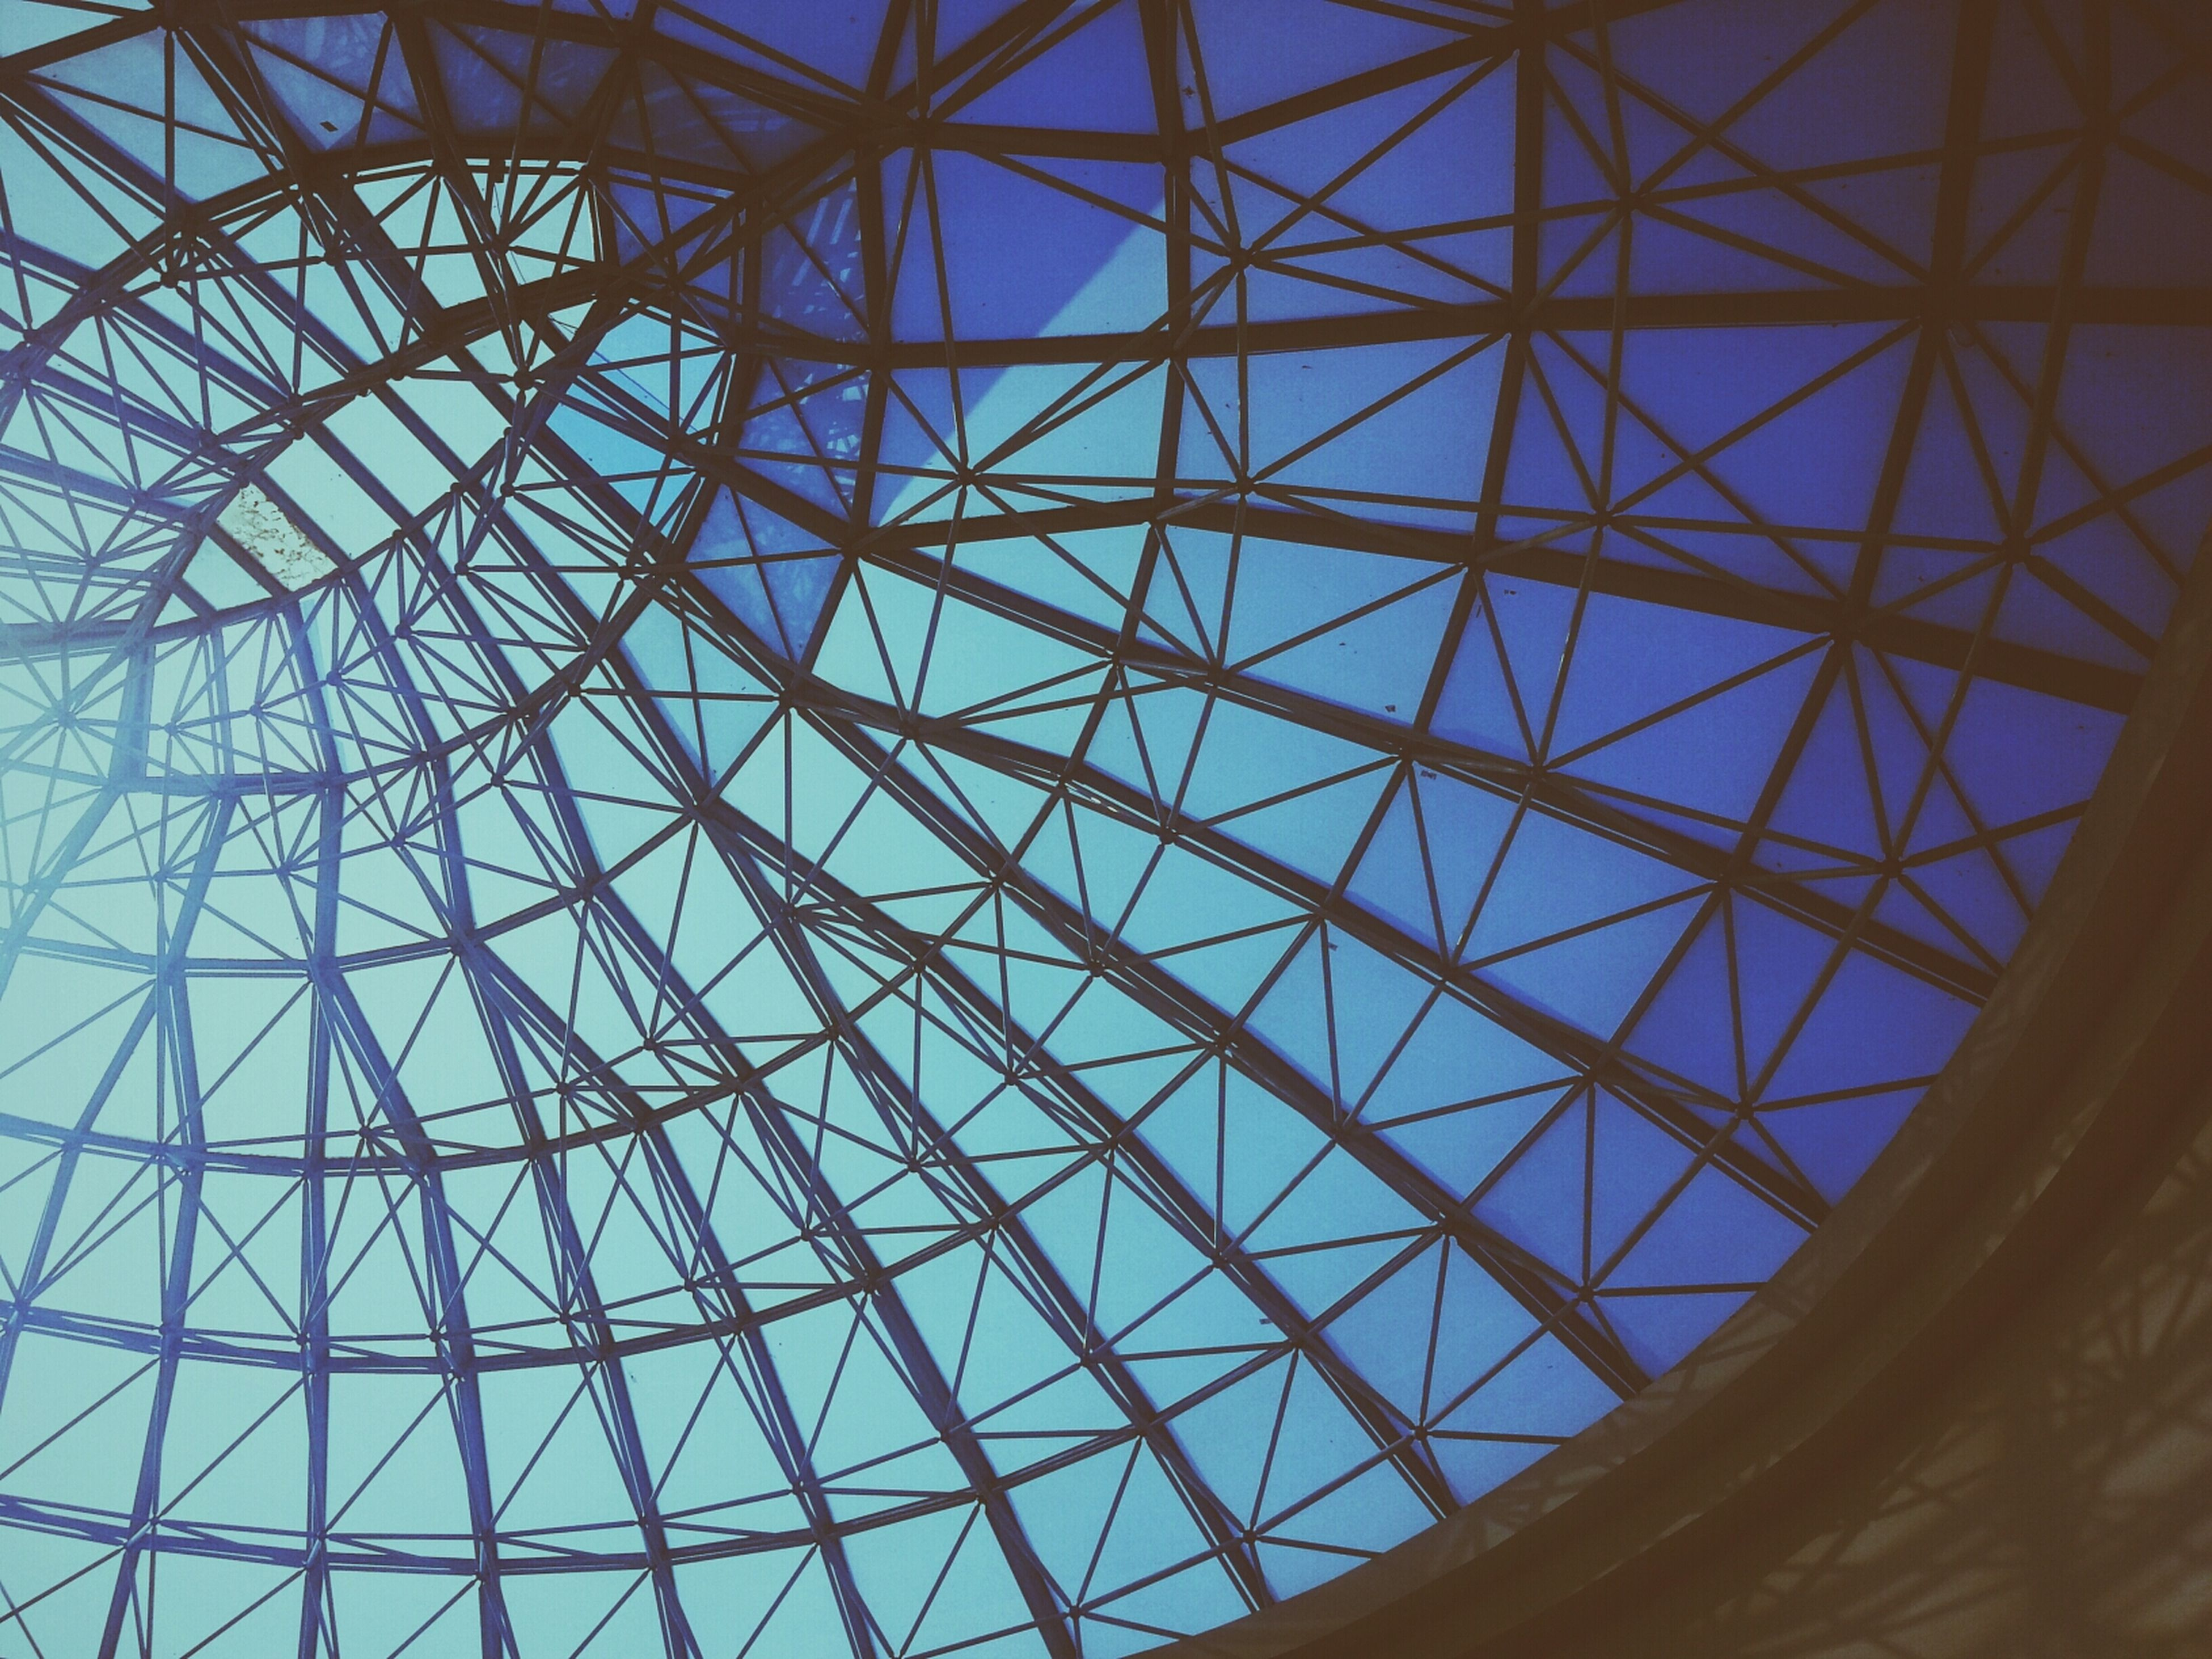 low angle view, architecture, built structure, indoors, pattern, glass - material, ceiling, full frame, backgrounds, architectural feature, design, geometric shape, modern, directly below, transparent, skylight, grid, sky, no people, day